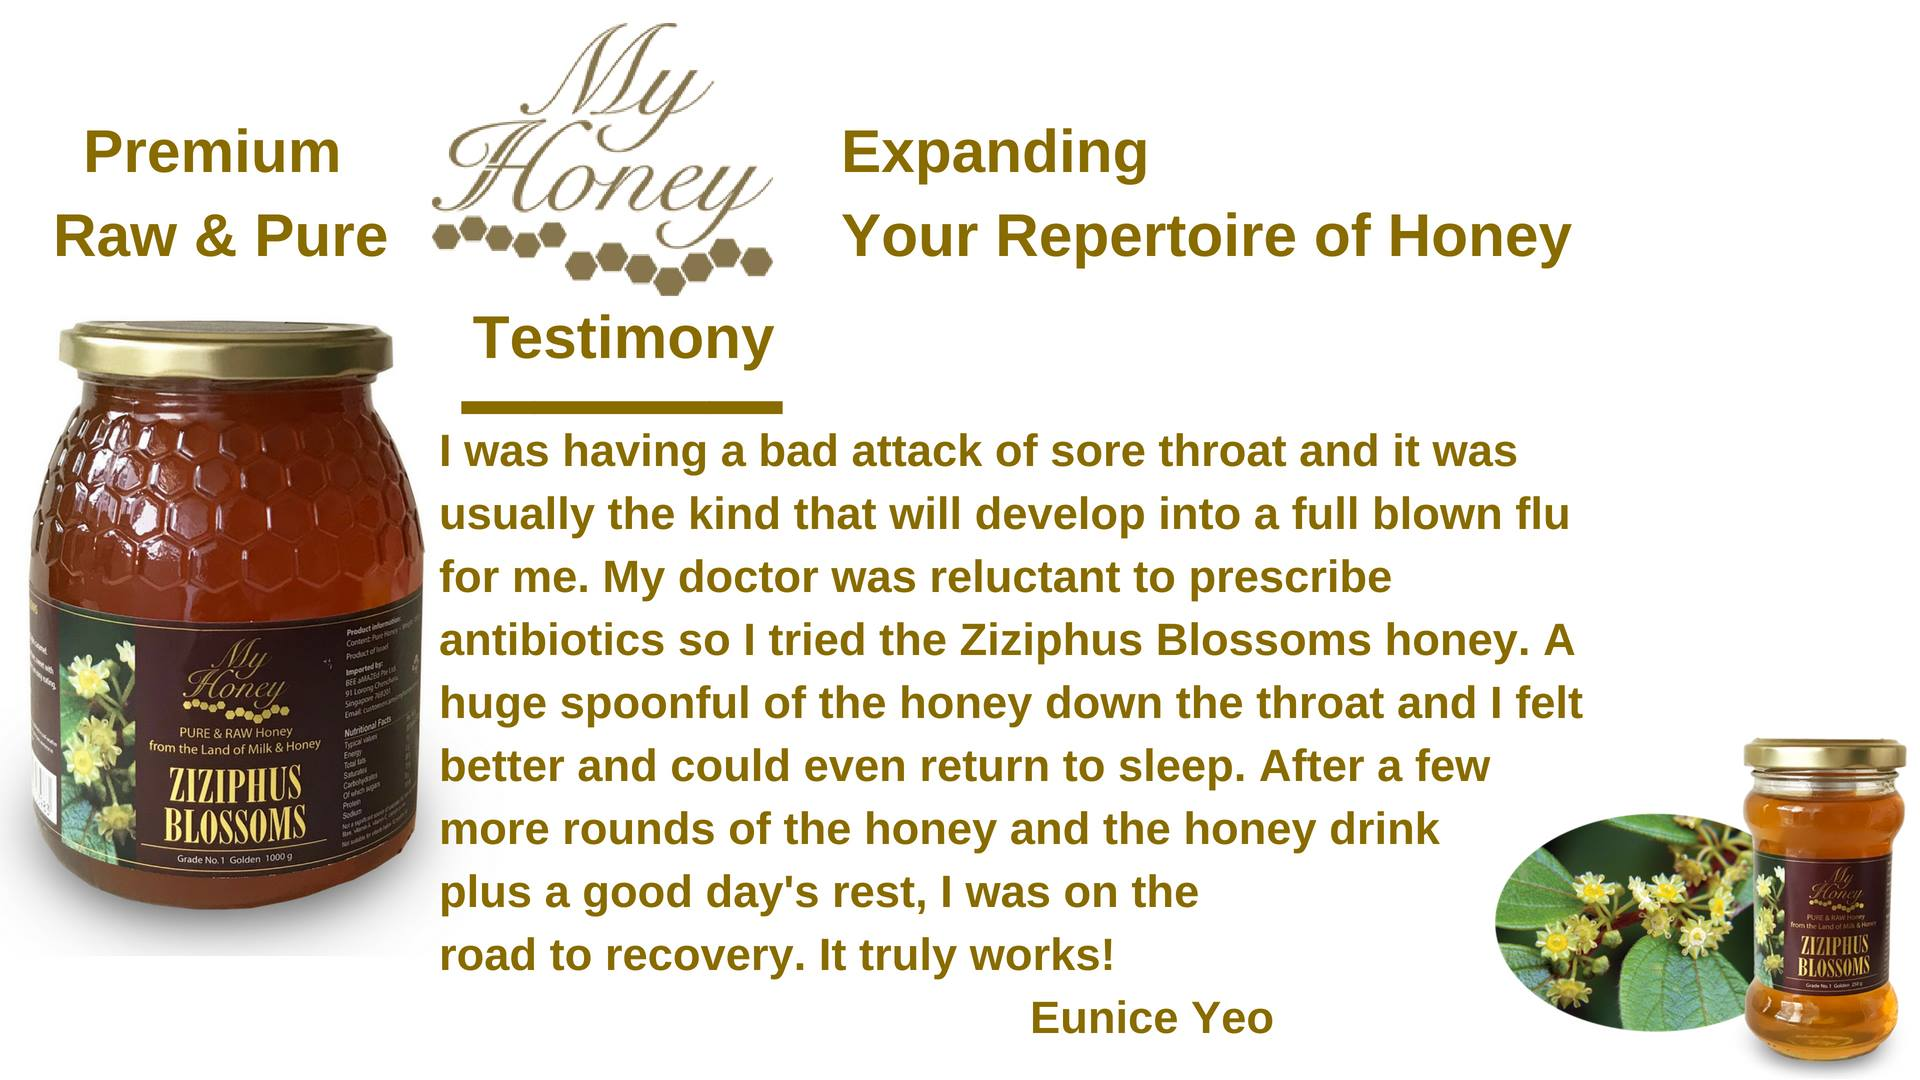 myhoney testimonial